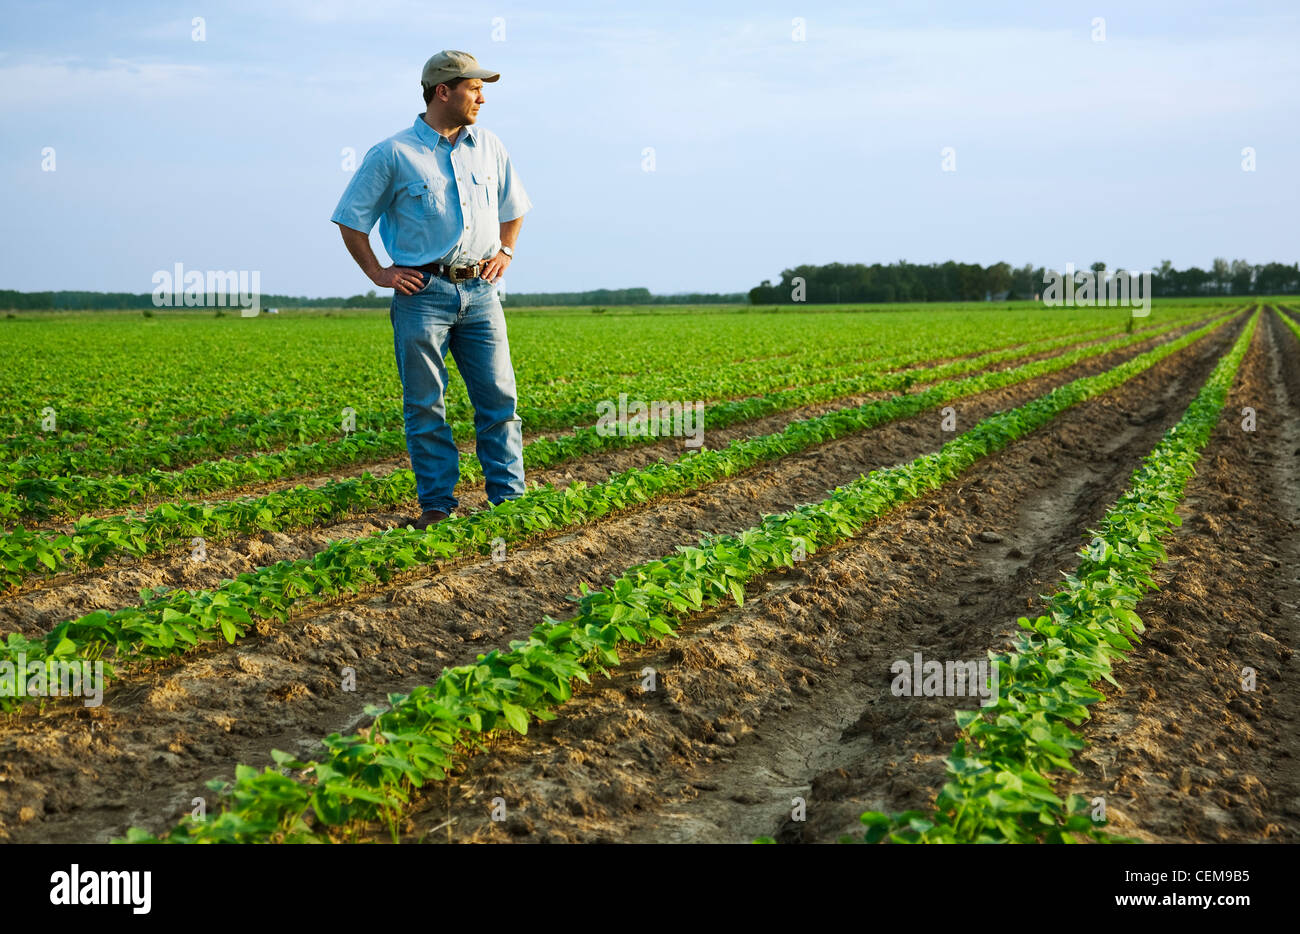 how to become a farmer in usa